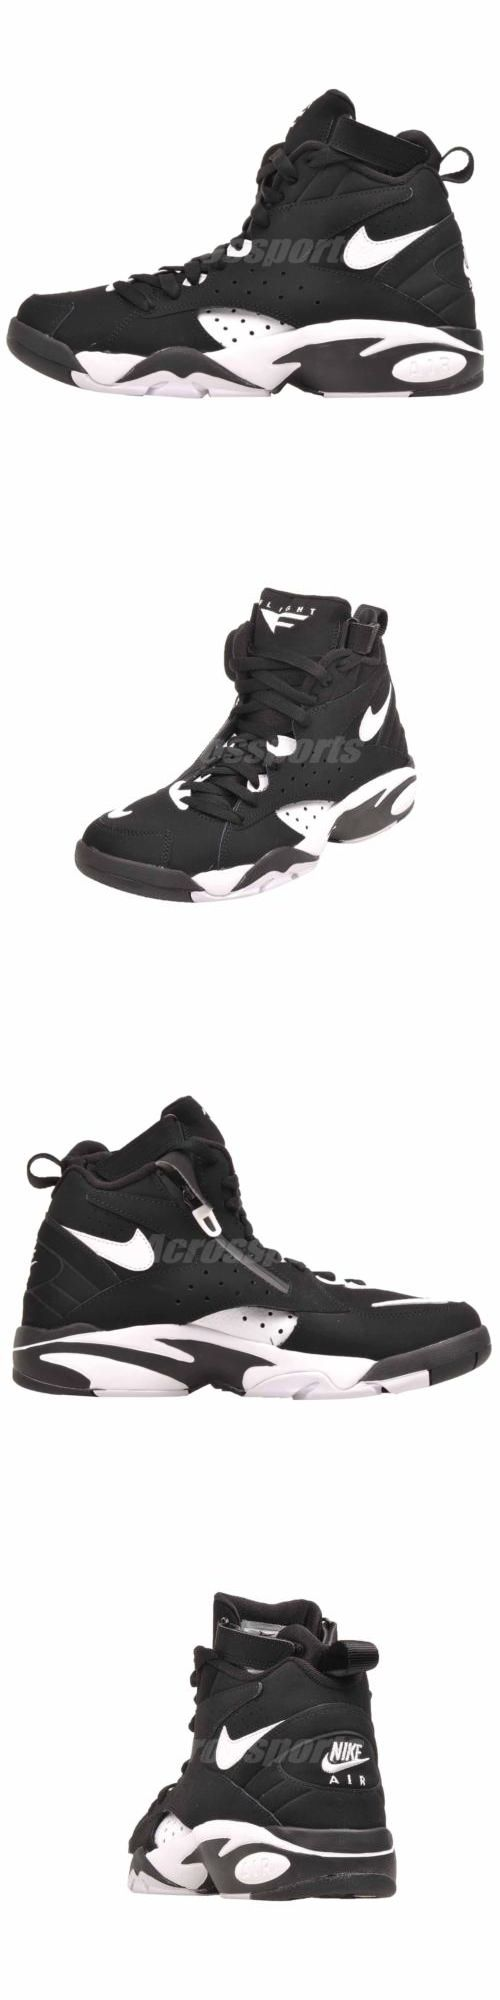 61d6c0d3027a Clothing Shoes and Accessories 158963  Nike Air Maestro Ii Ltd Basketball  Mens Shoes Black White Ah8511-001 -  BUY IT NOW ONLY   98 on  eBay  clothing  ...